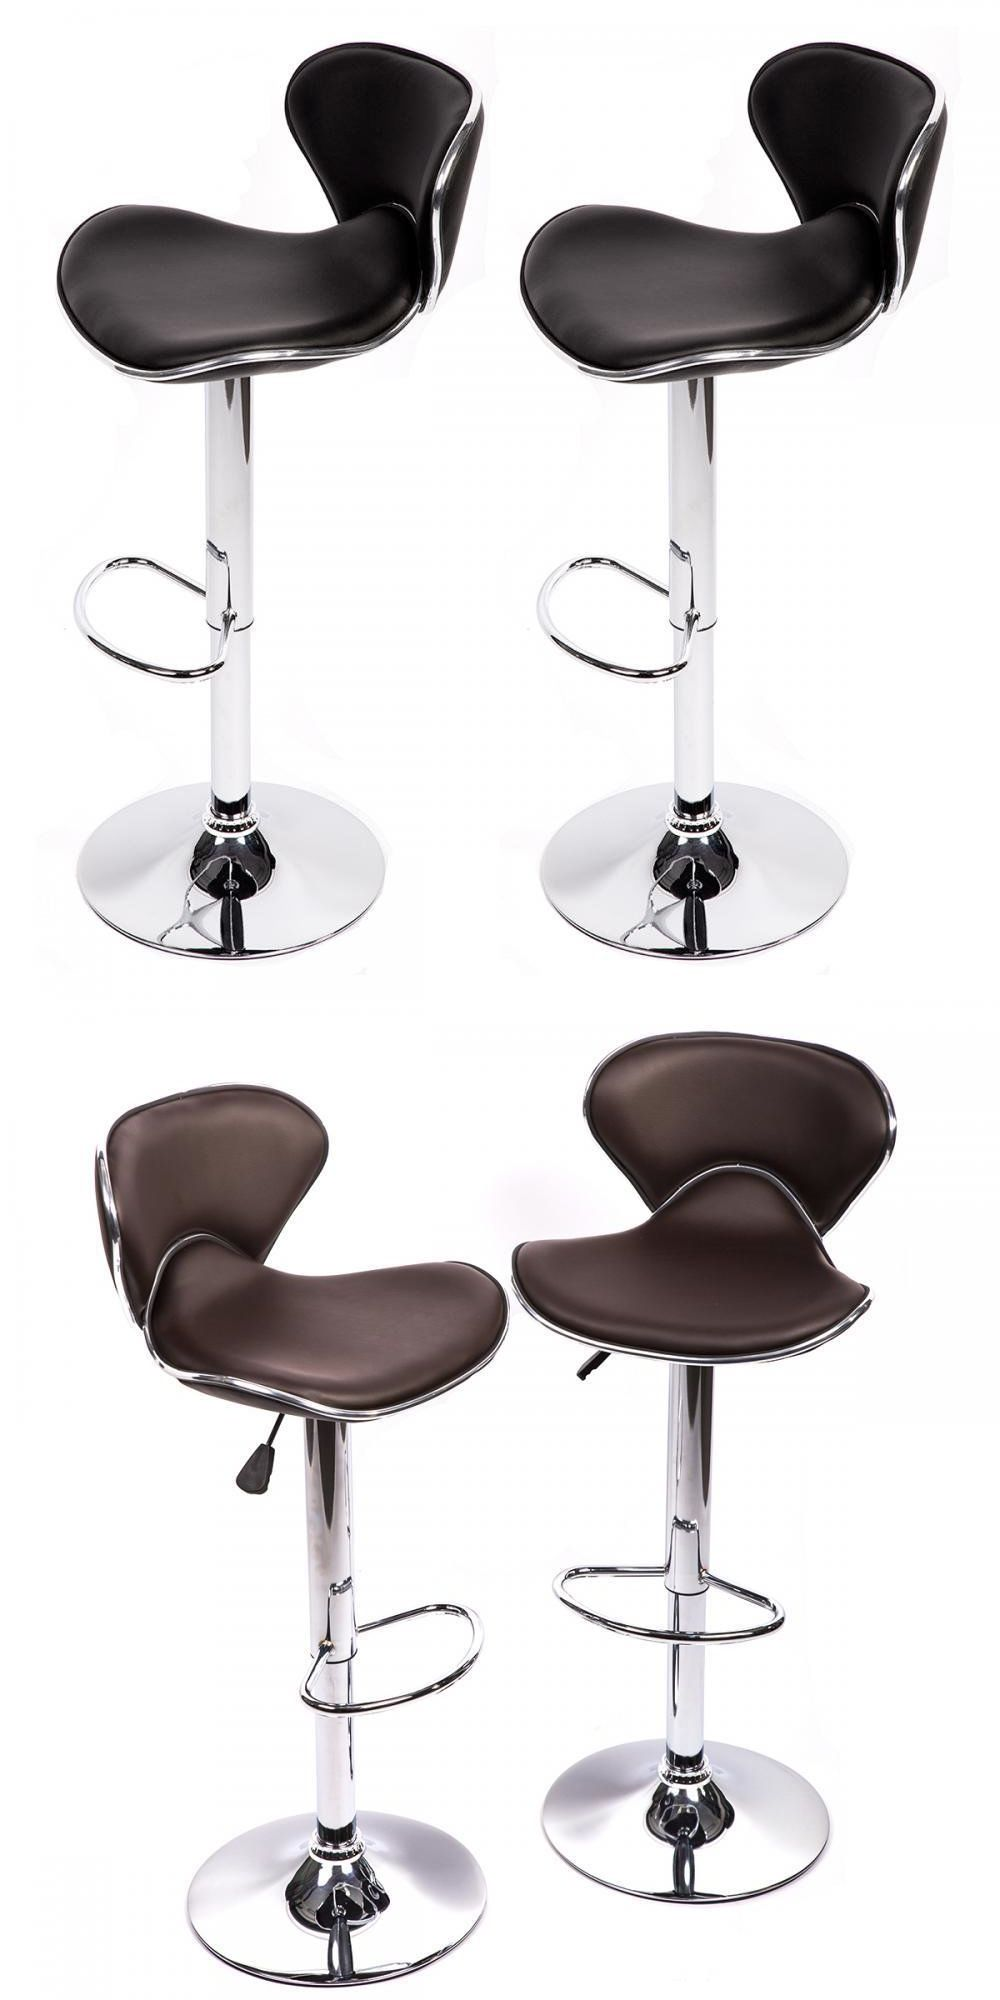 Bar Stools 153928 Set Of 2 Bar Stools Black Pu Leather Modern